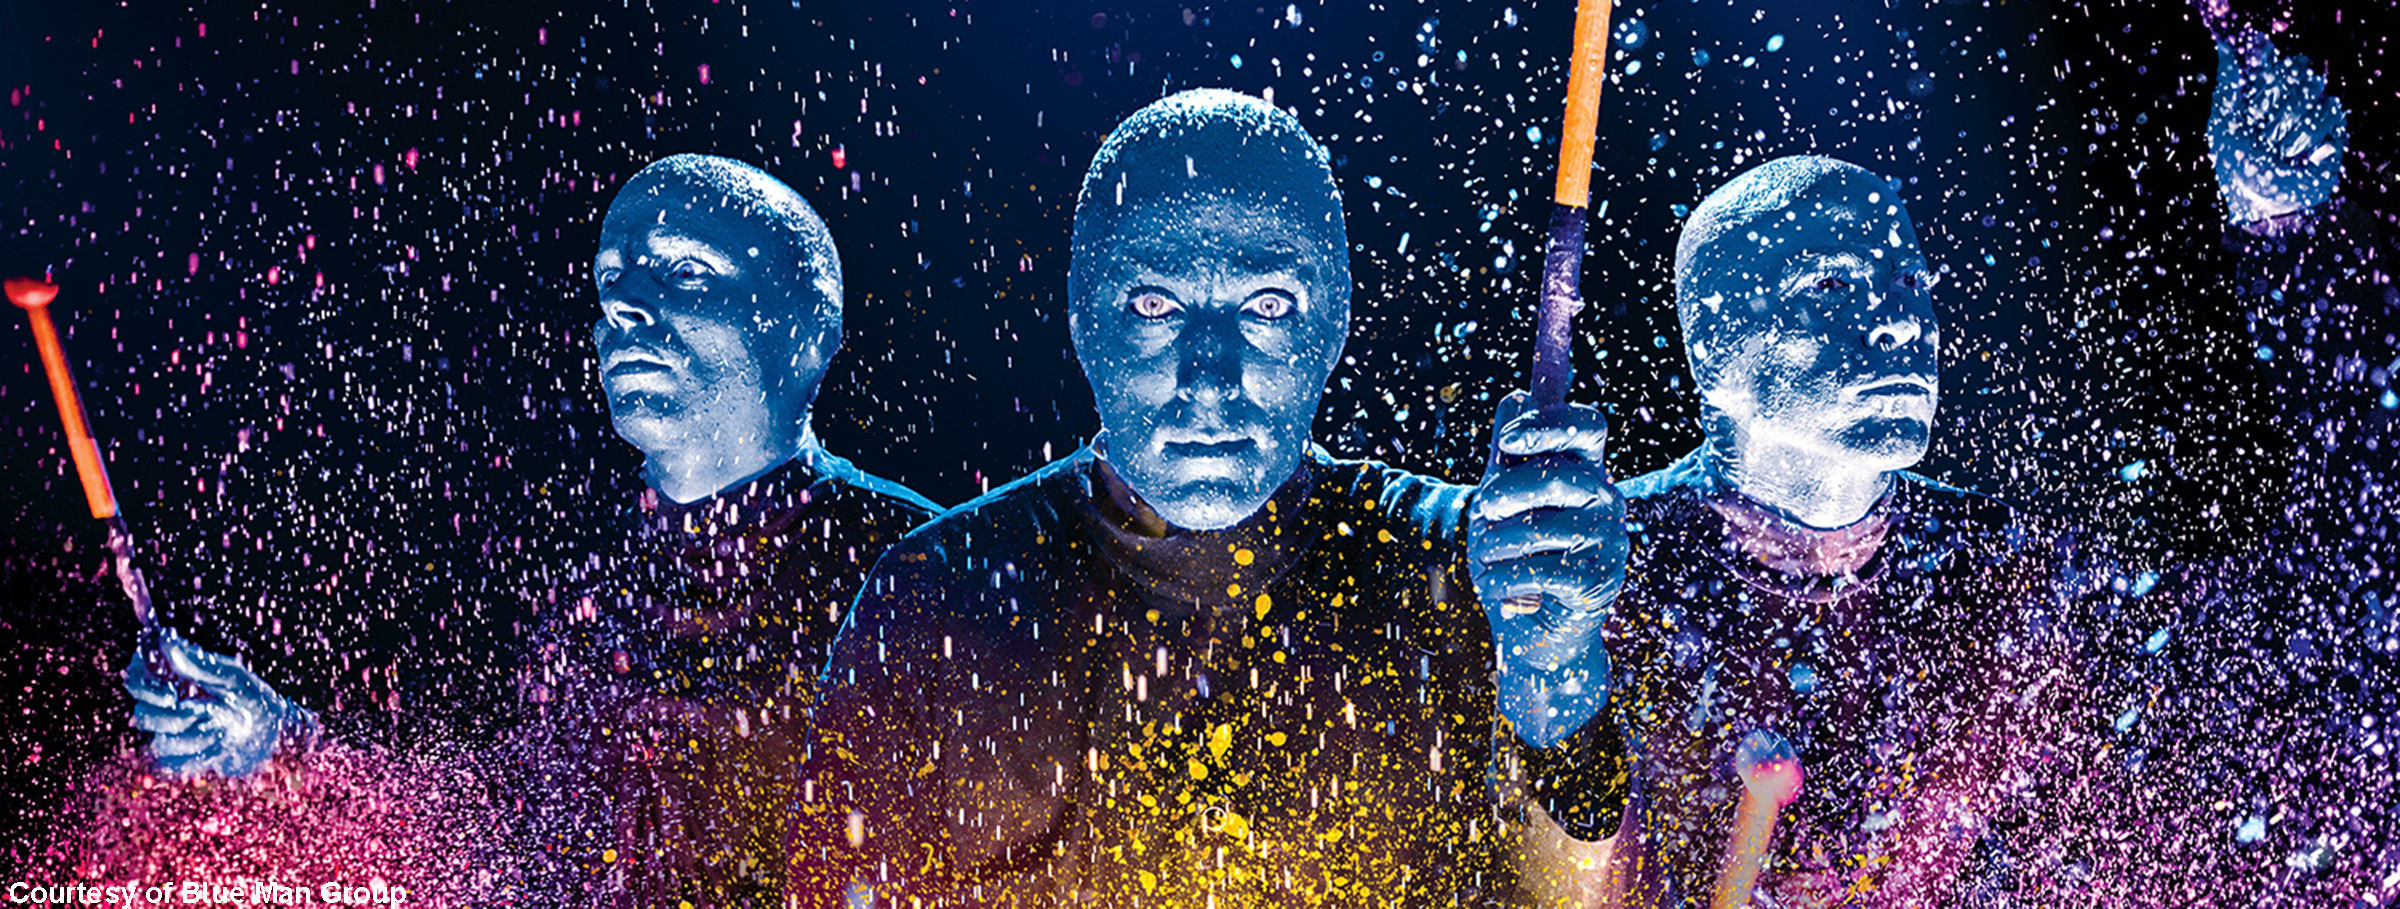 Blue Man Group on Paint Drums, Images Courtesy of Blue Man Group